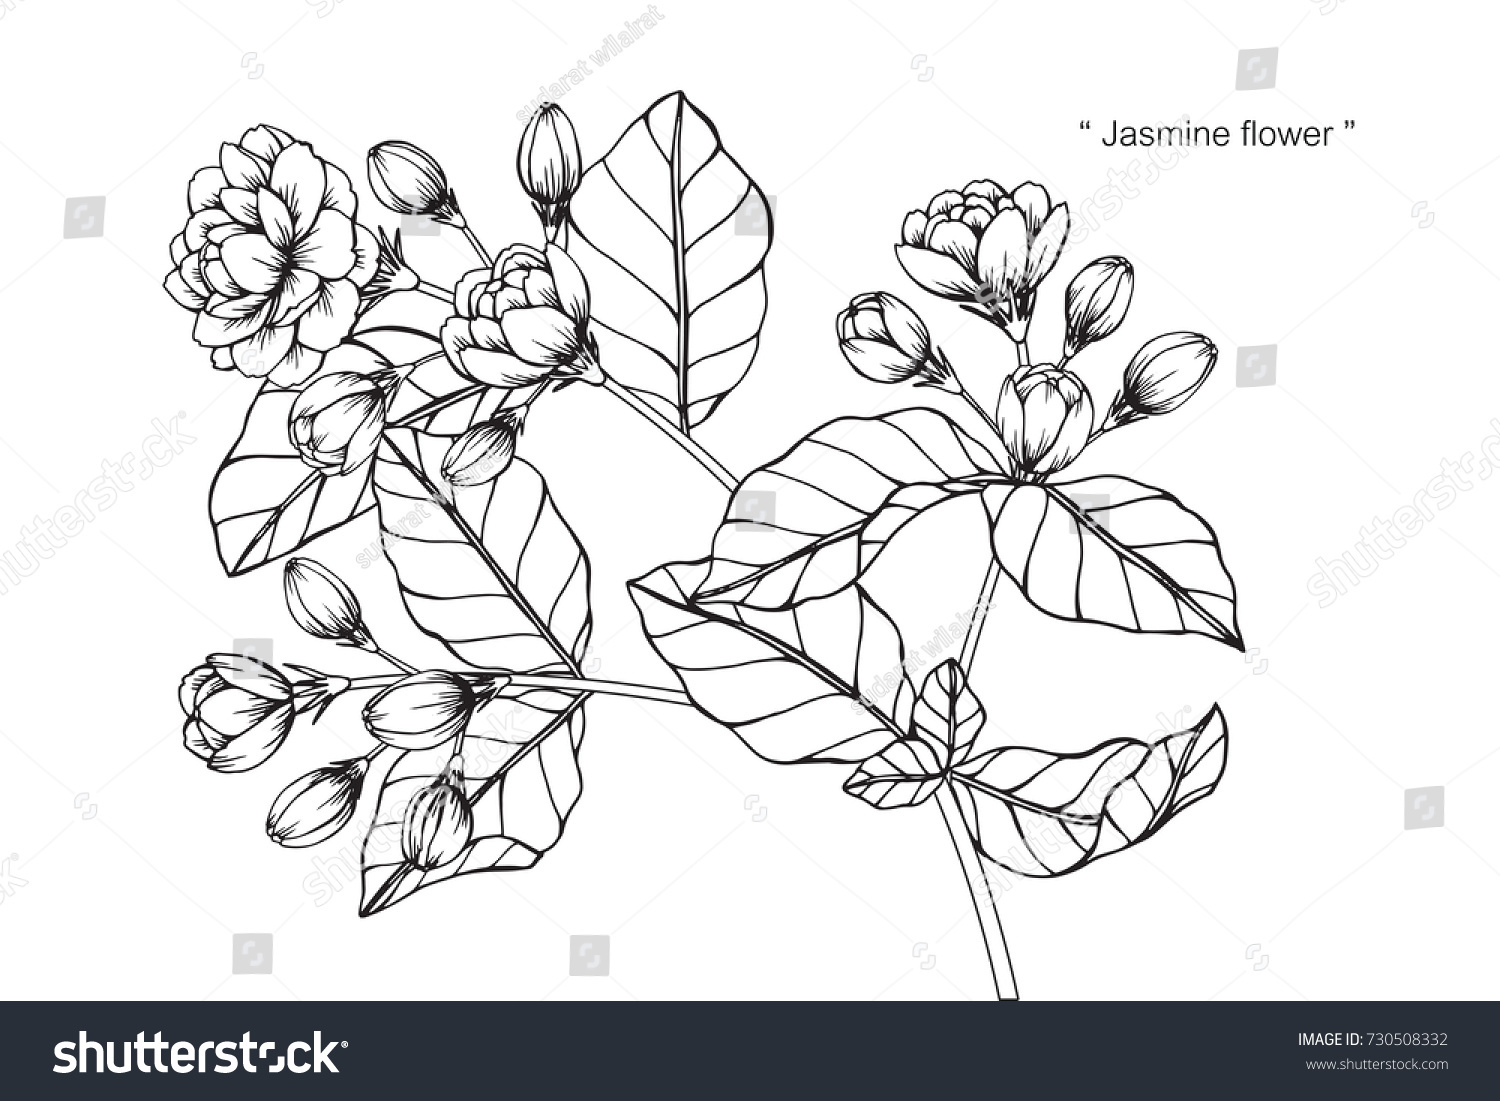 Hand drawing and sketch jasmine flower black and white with line art illustration